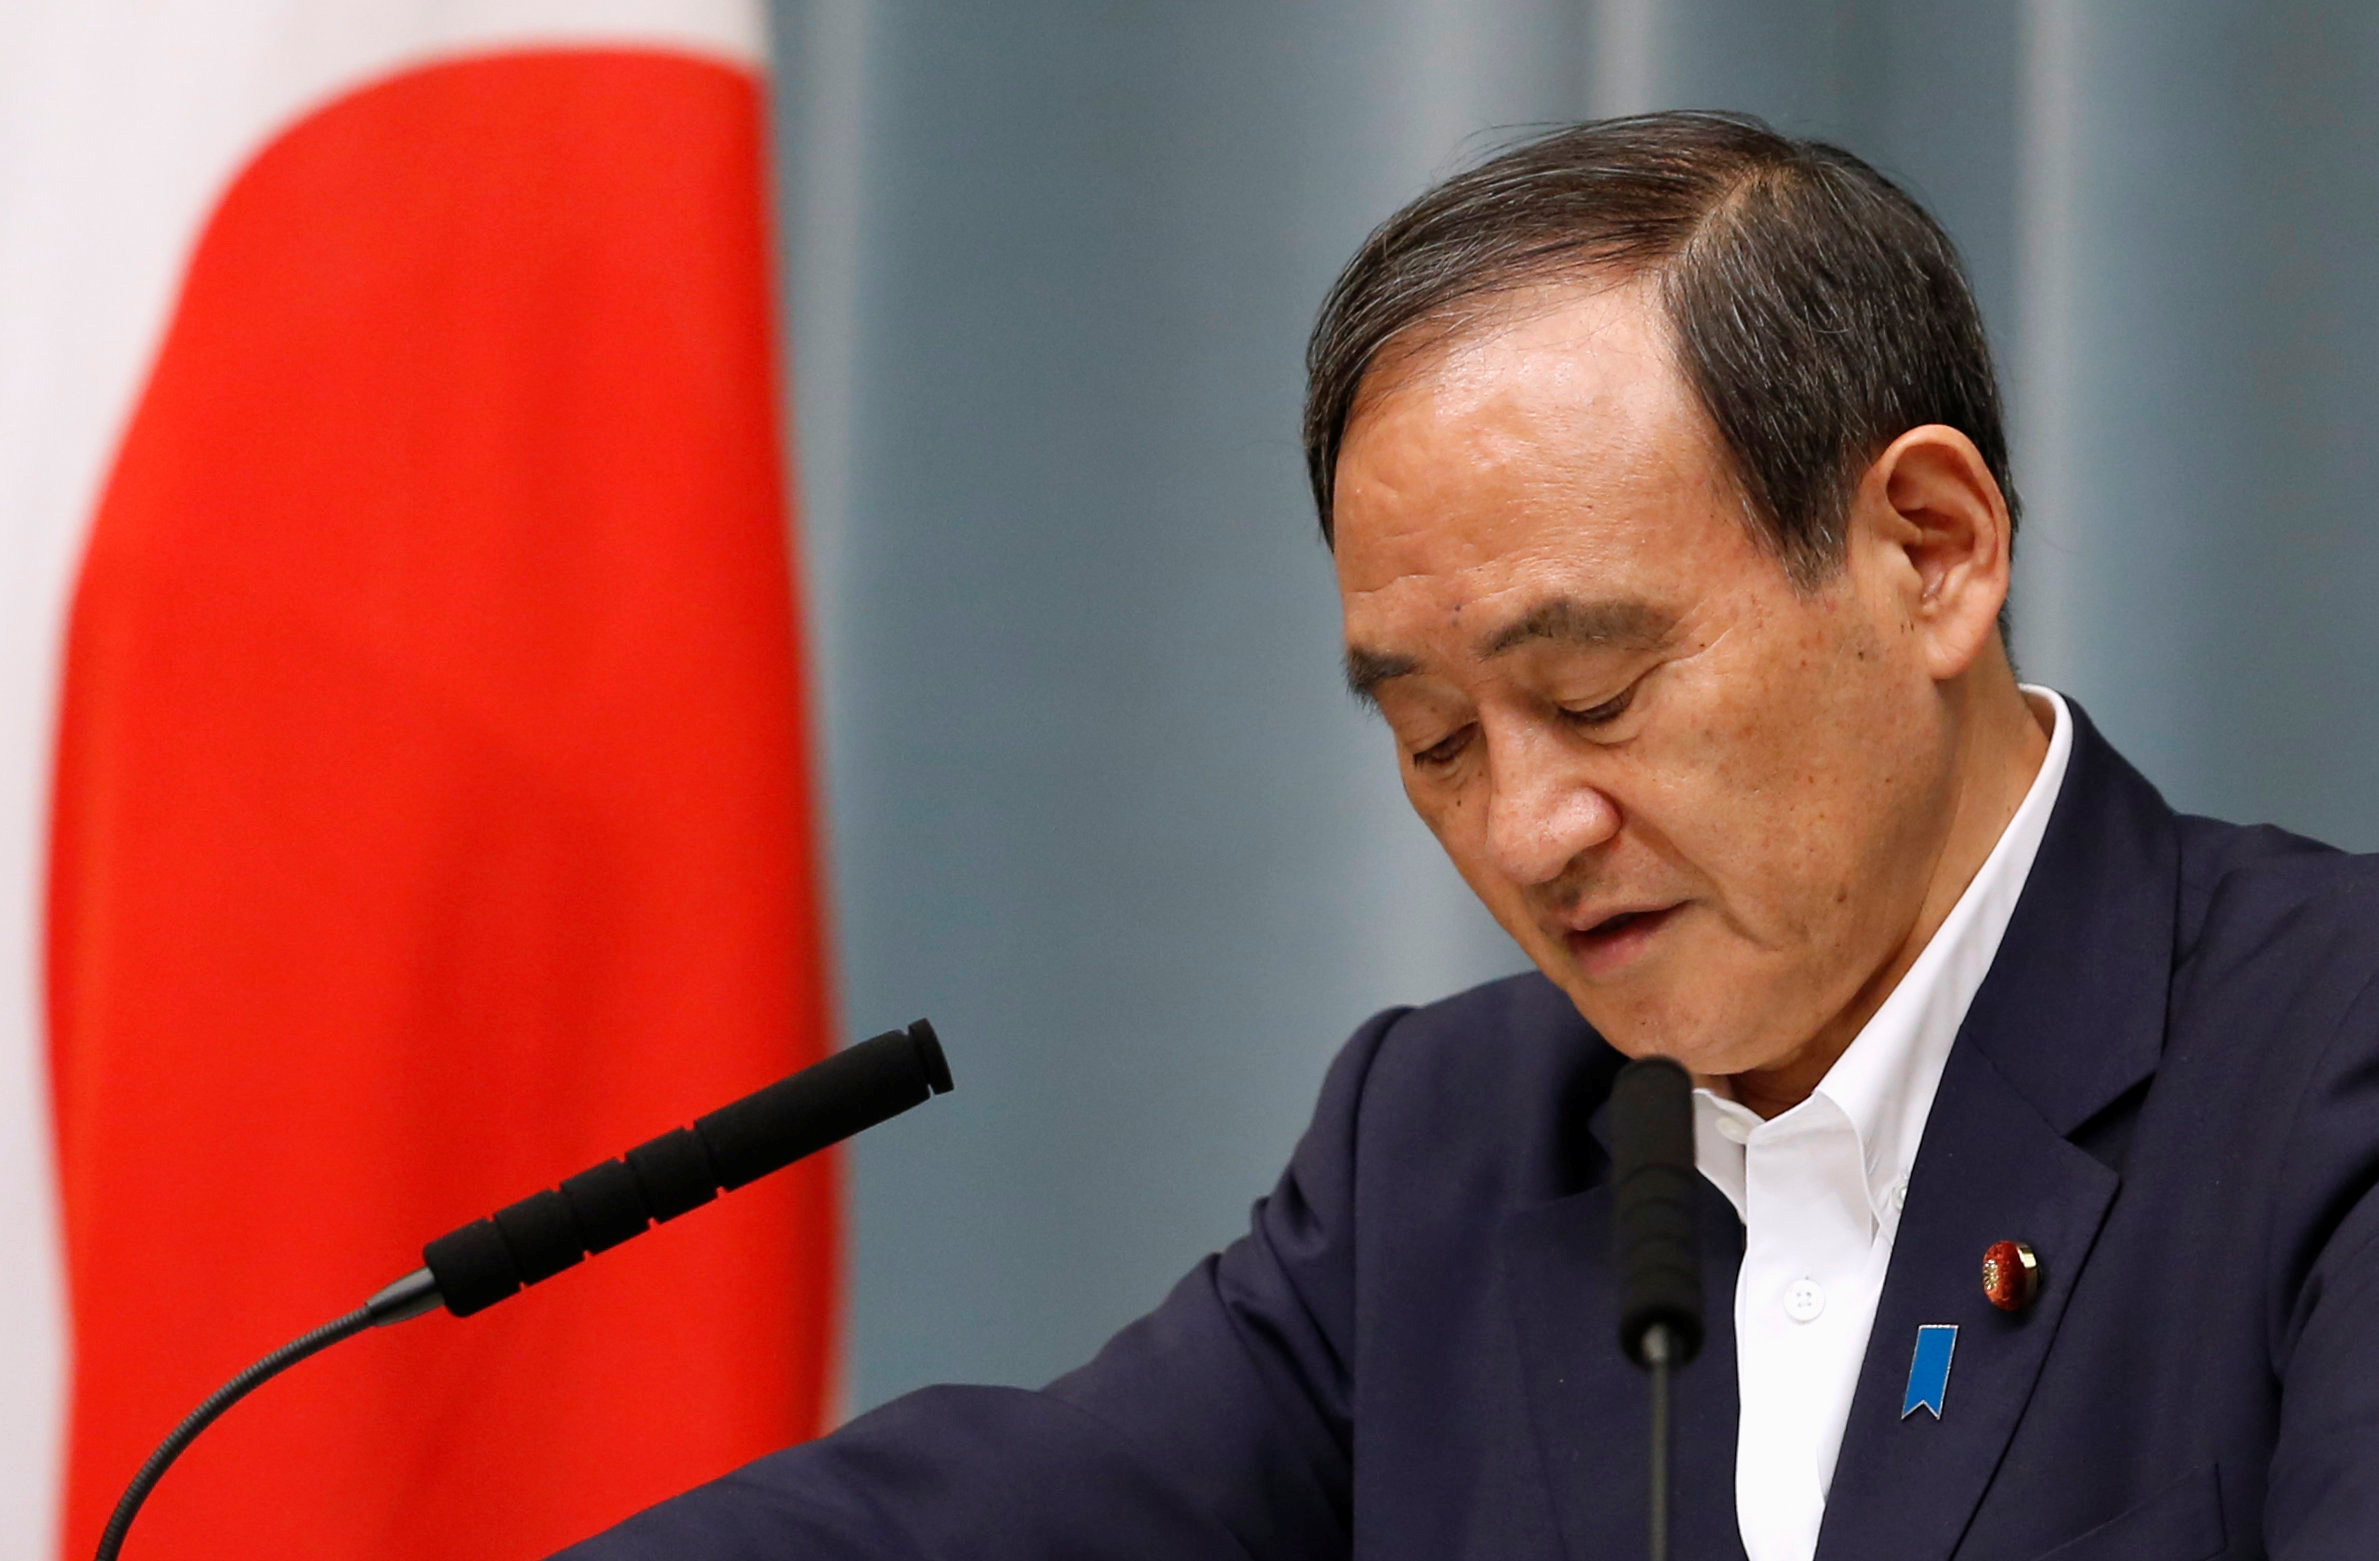 Japan's Chief Cabinet Secretary Yoshihide Suga attends a news conference after the launch of a North Korean missile at Prime Minister Shinzo Abe's official residence in Tokyo, Japan